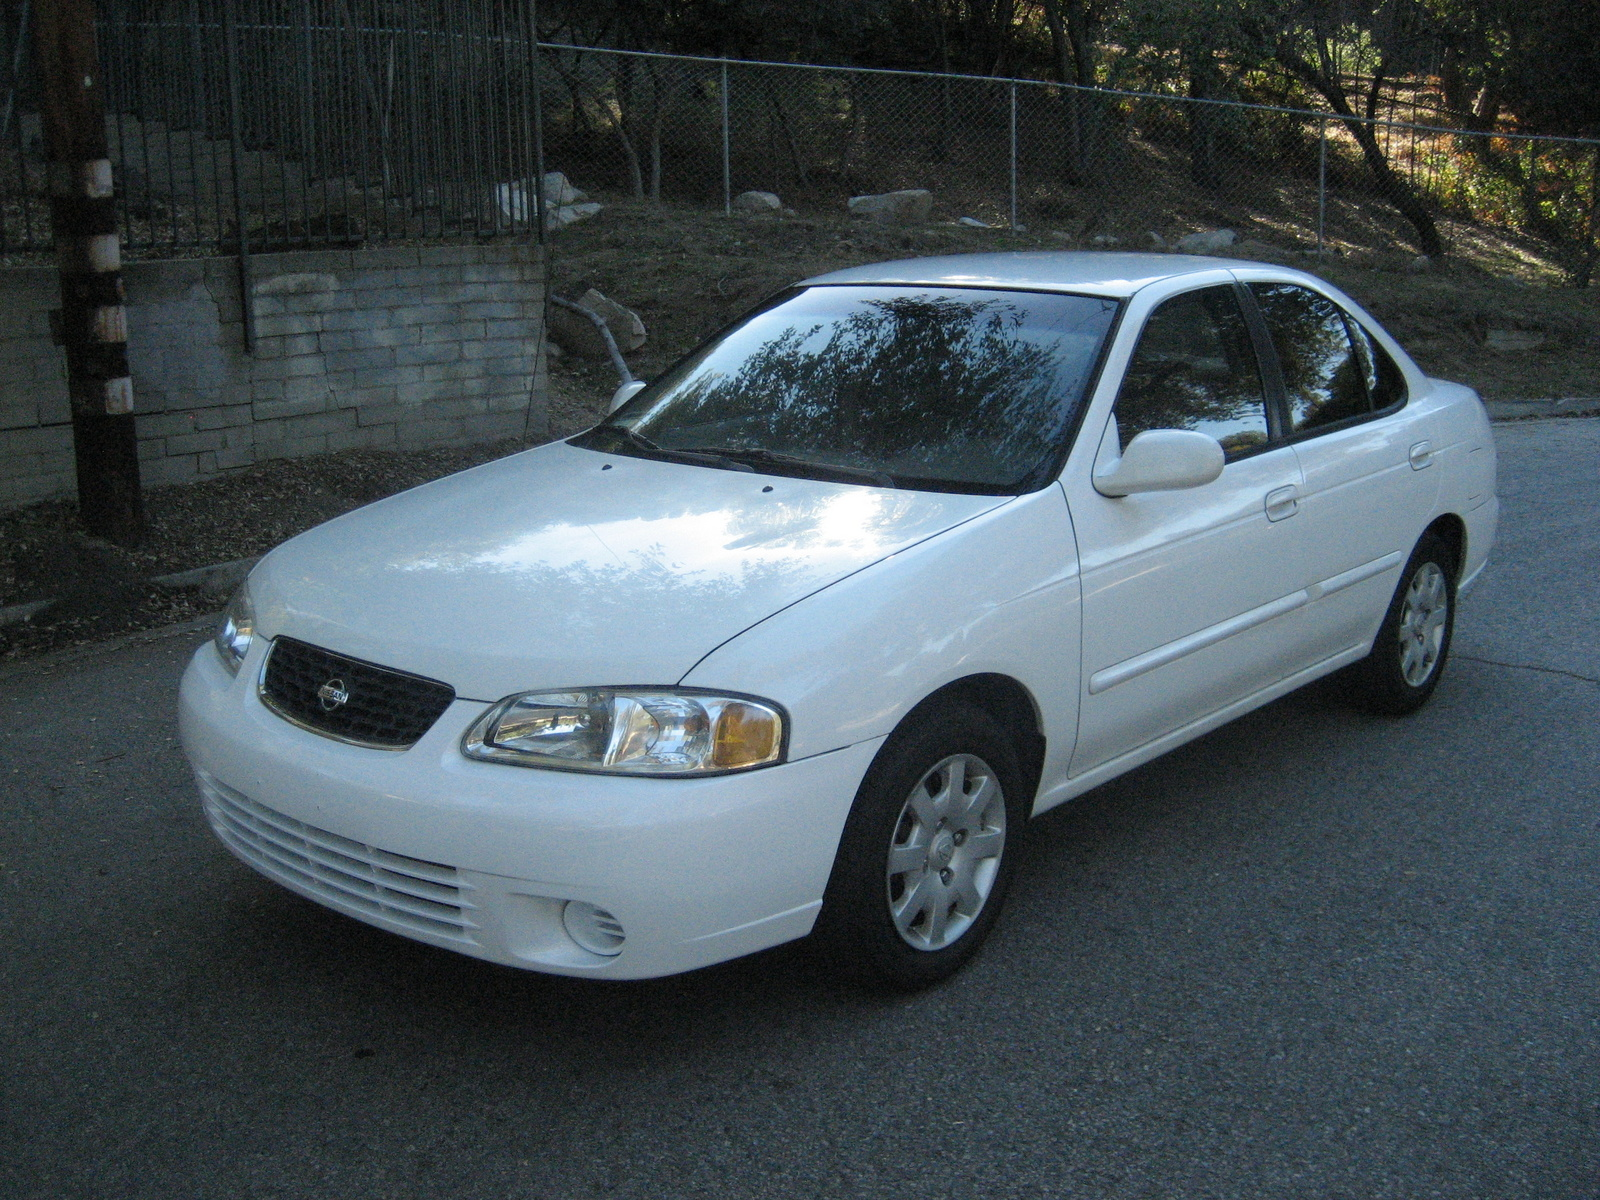 Nissan Sentra Gxe Pic